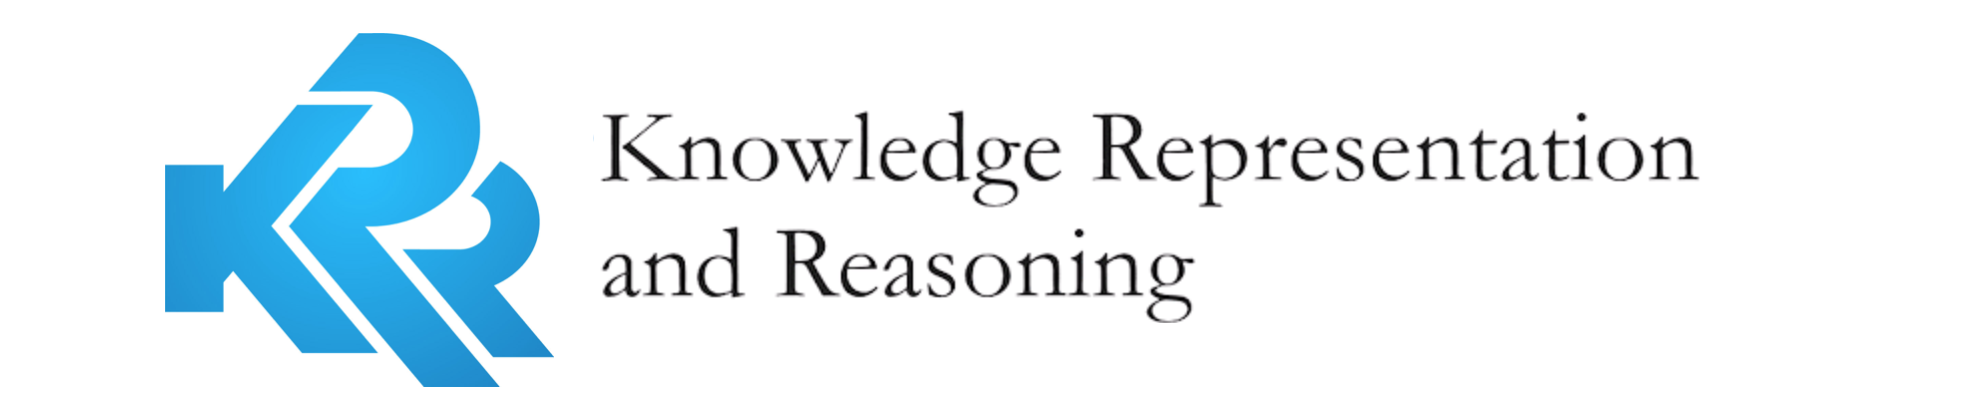 Knowledge Representation and Reasoning Group